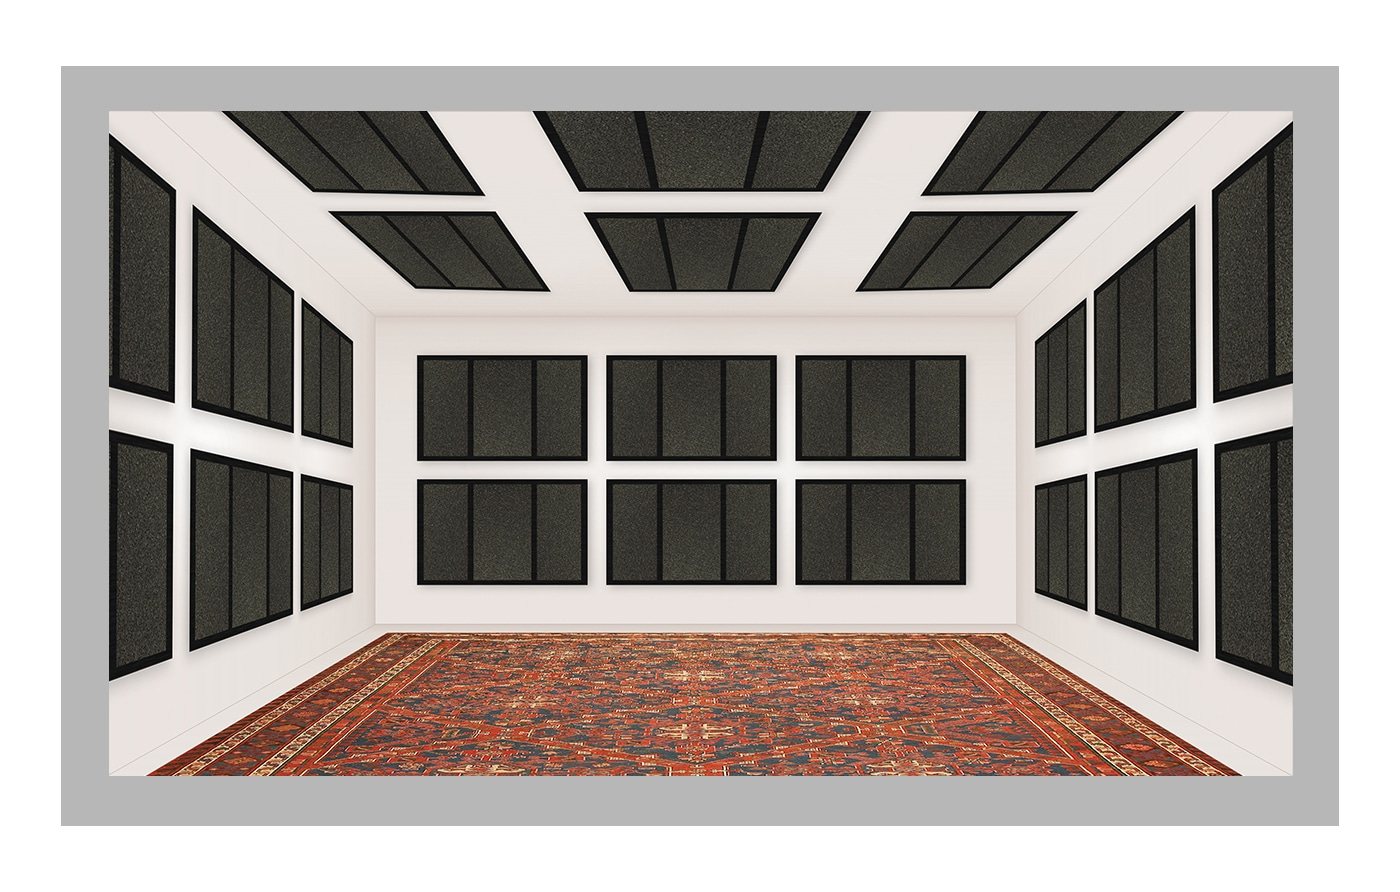 positioning of acoustic foam panels on the walls and ceiling